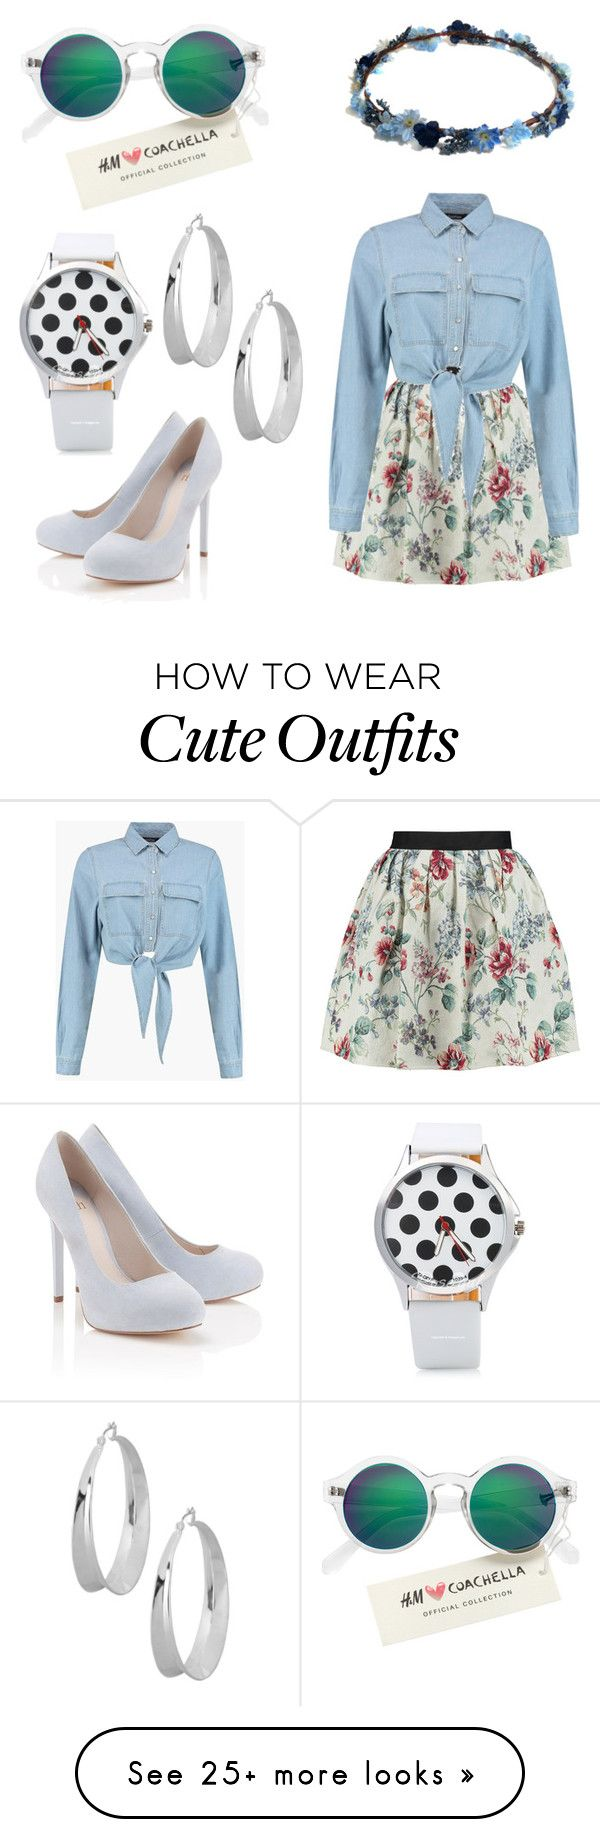 """""""Coachella Outfit"""" by jasmineafra25 on Polyvore featuring Raoul, Lipsy, H&M, Robert Lee Morris, coachella and specialcoachella"""